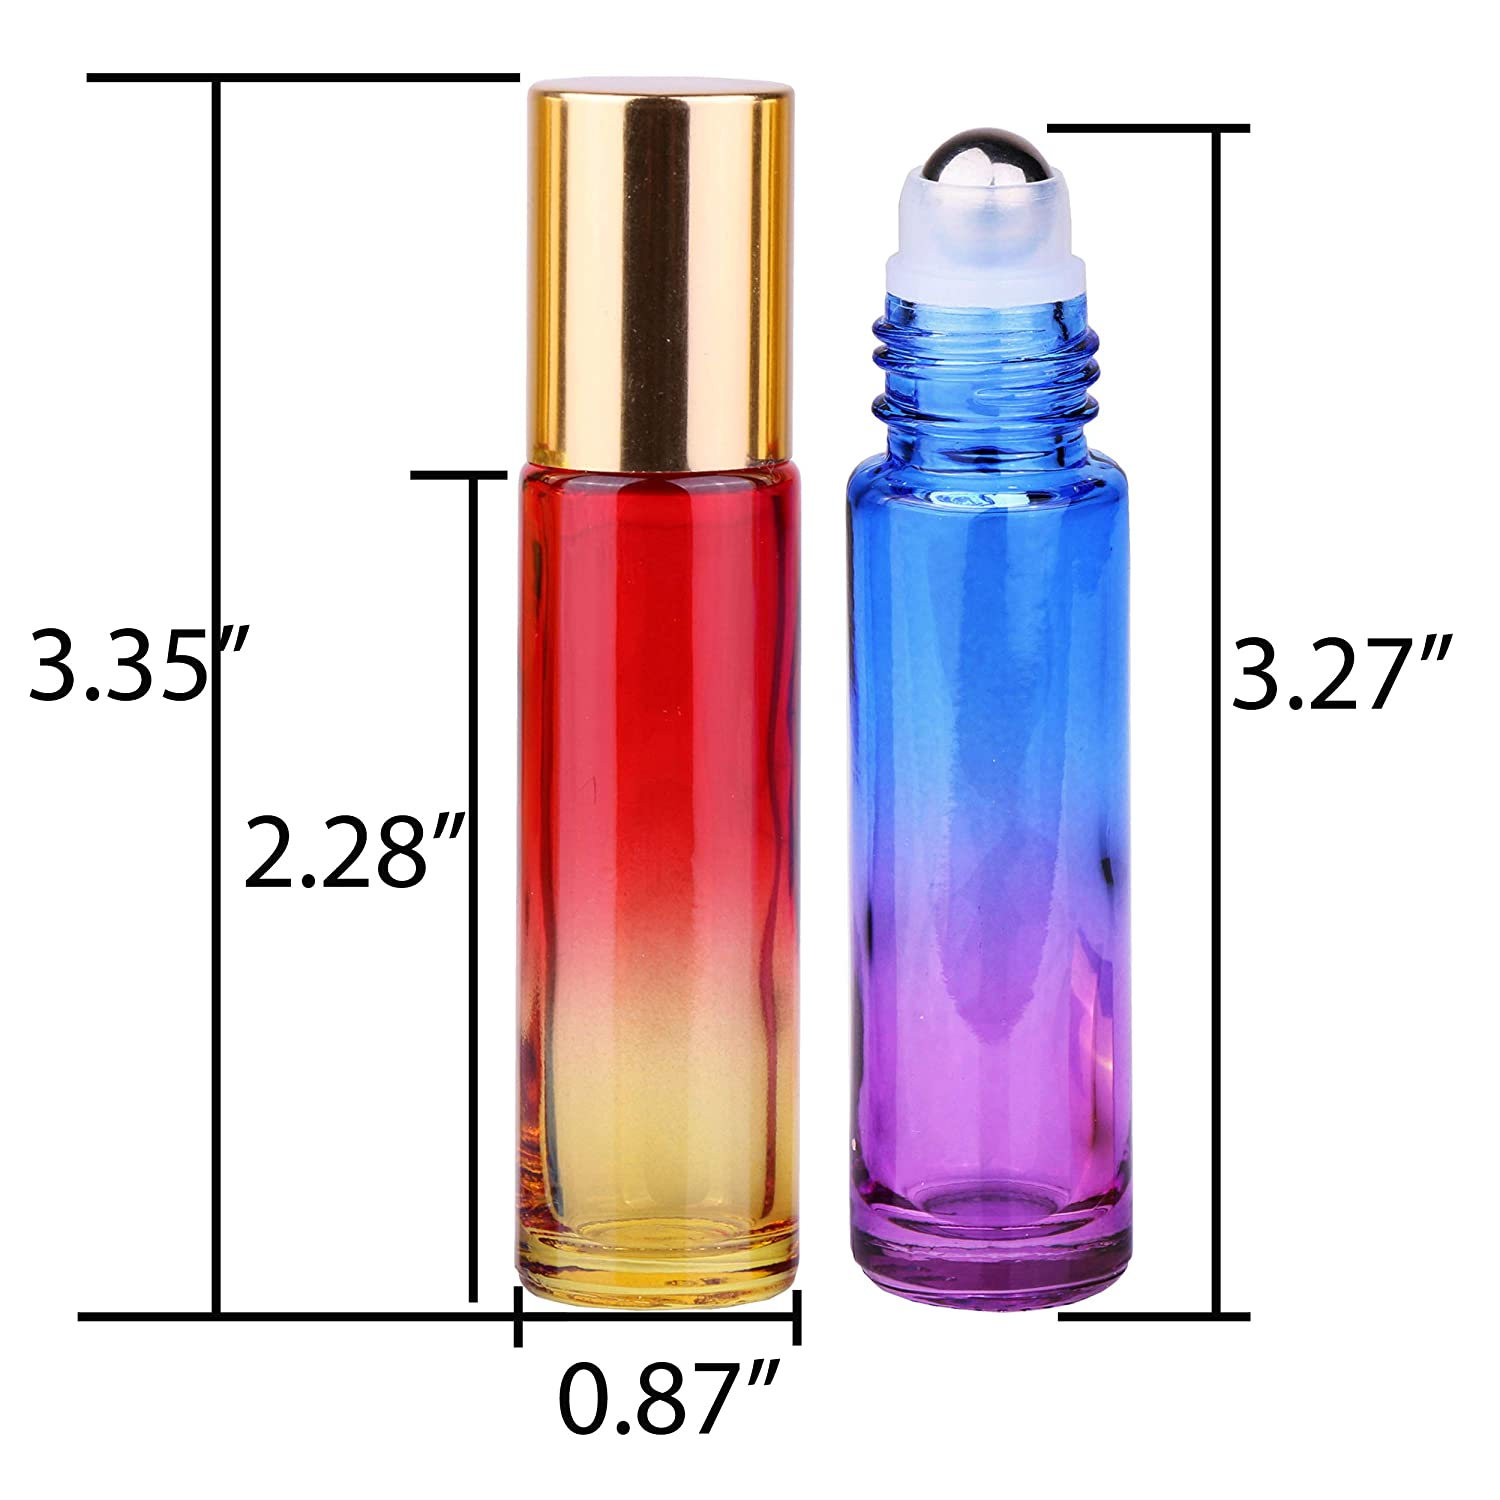 Amazon.com: INICE 24 botellas de cristal de 10 ml de espesor ...